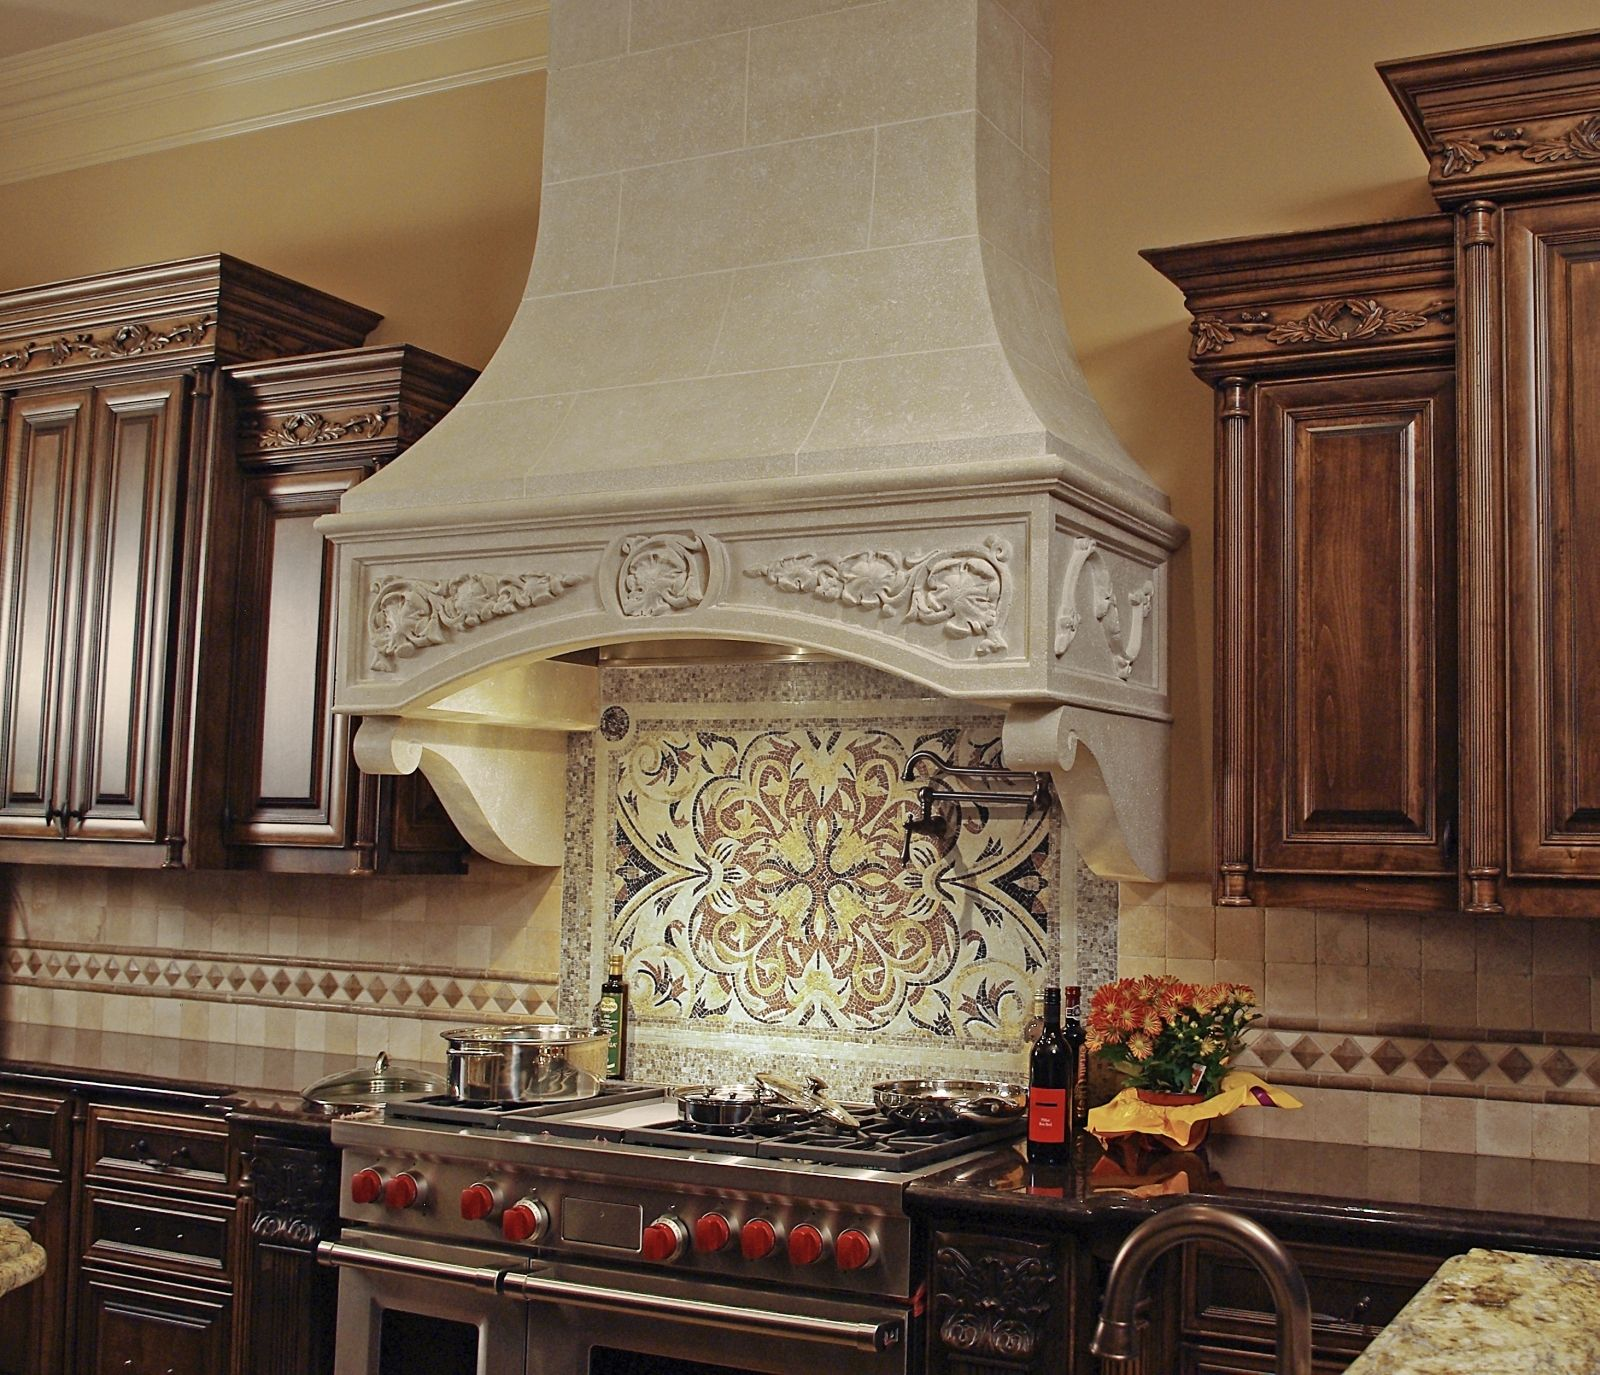 Traditional Kitchen Backsplash Ideas: Image Detail For -Marie-Antoinette Kitchen Hood With